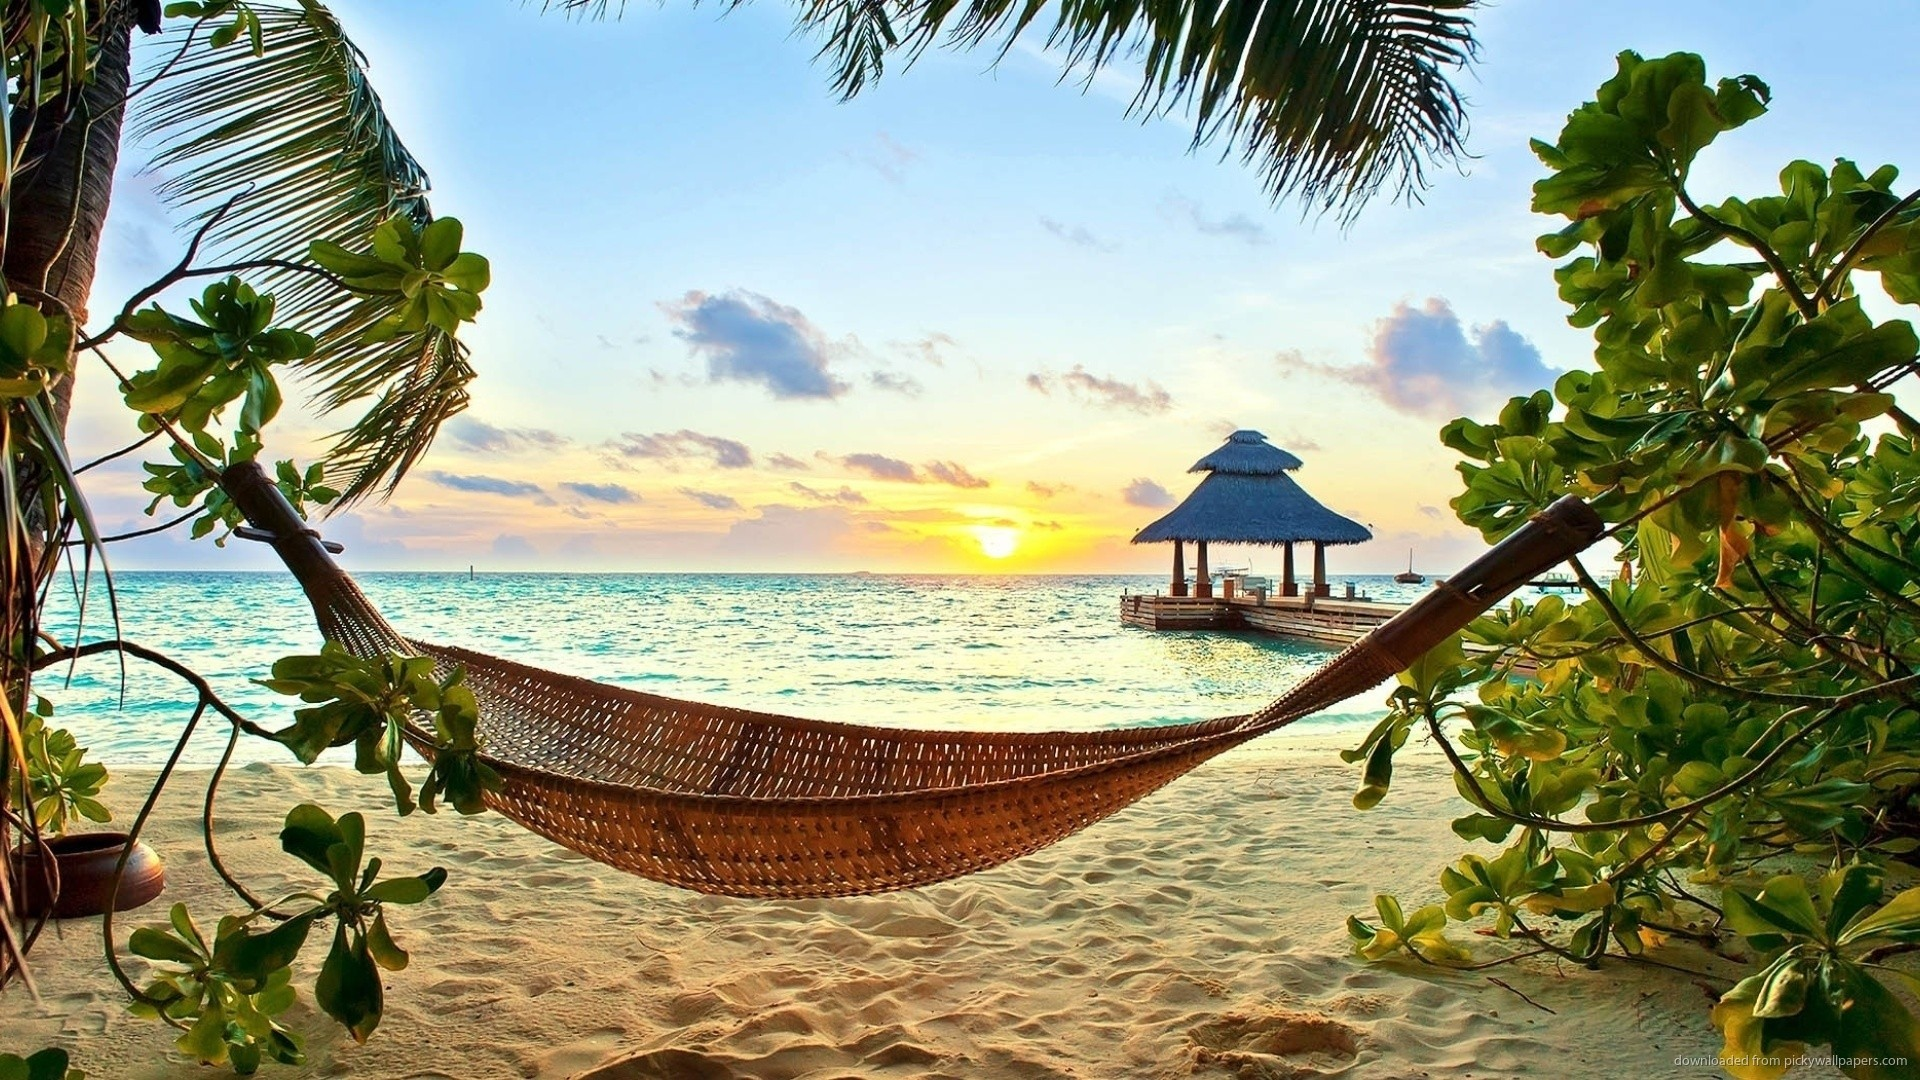 Beach Hammock At Sunset Wallpaper picture